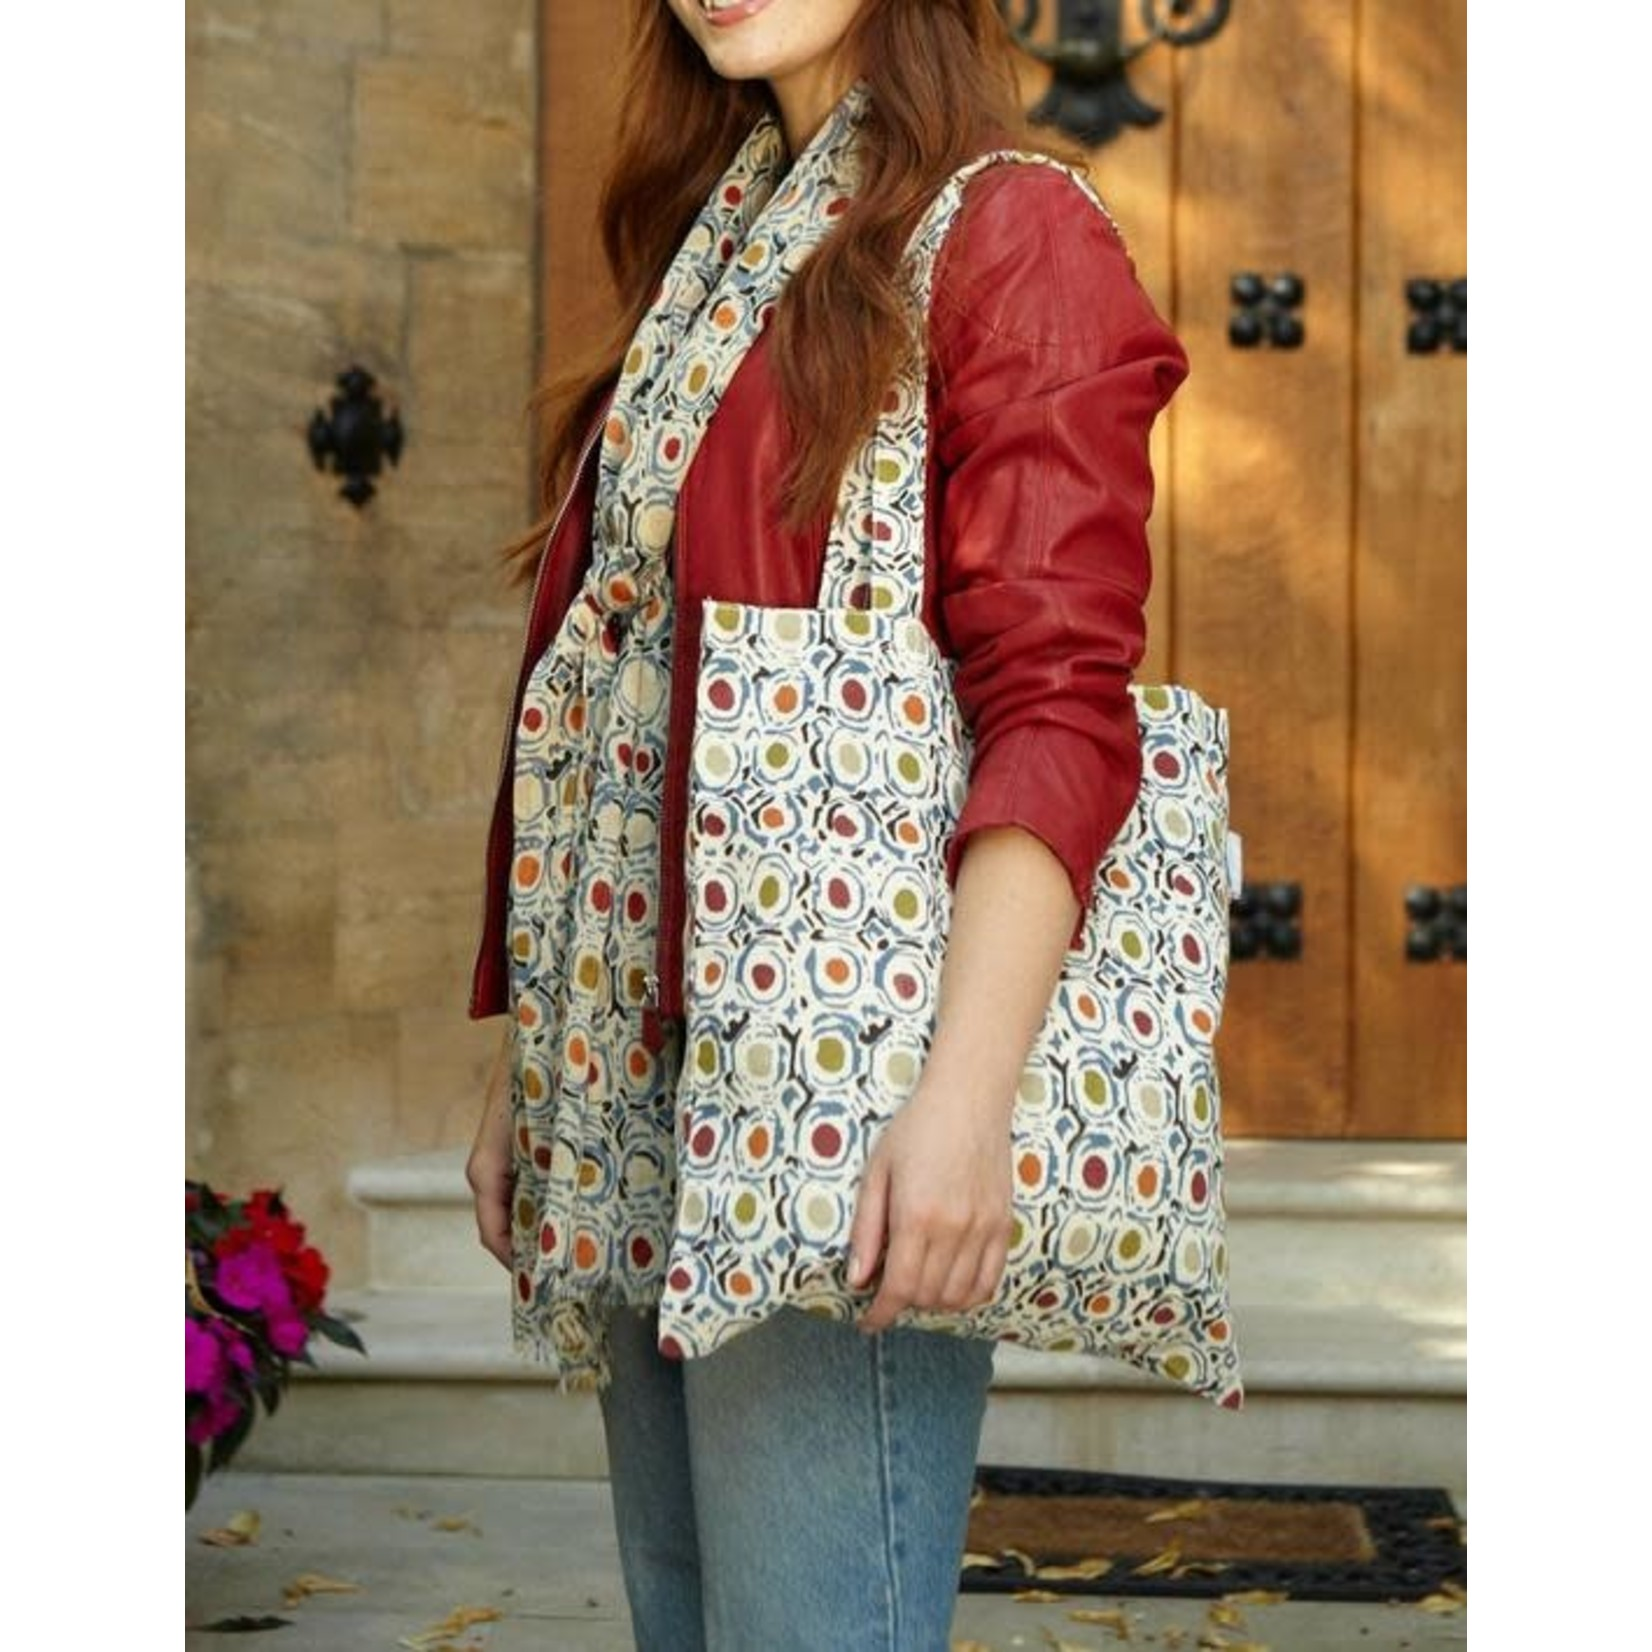 Peony Accessories Olives Scarf